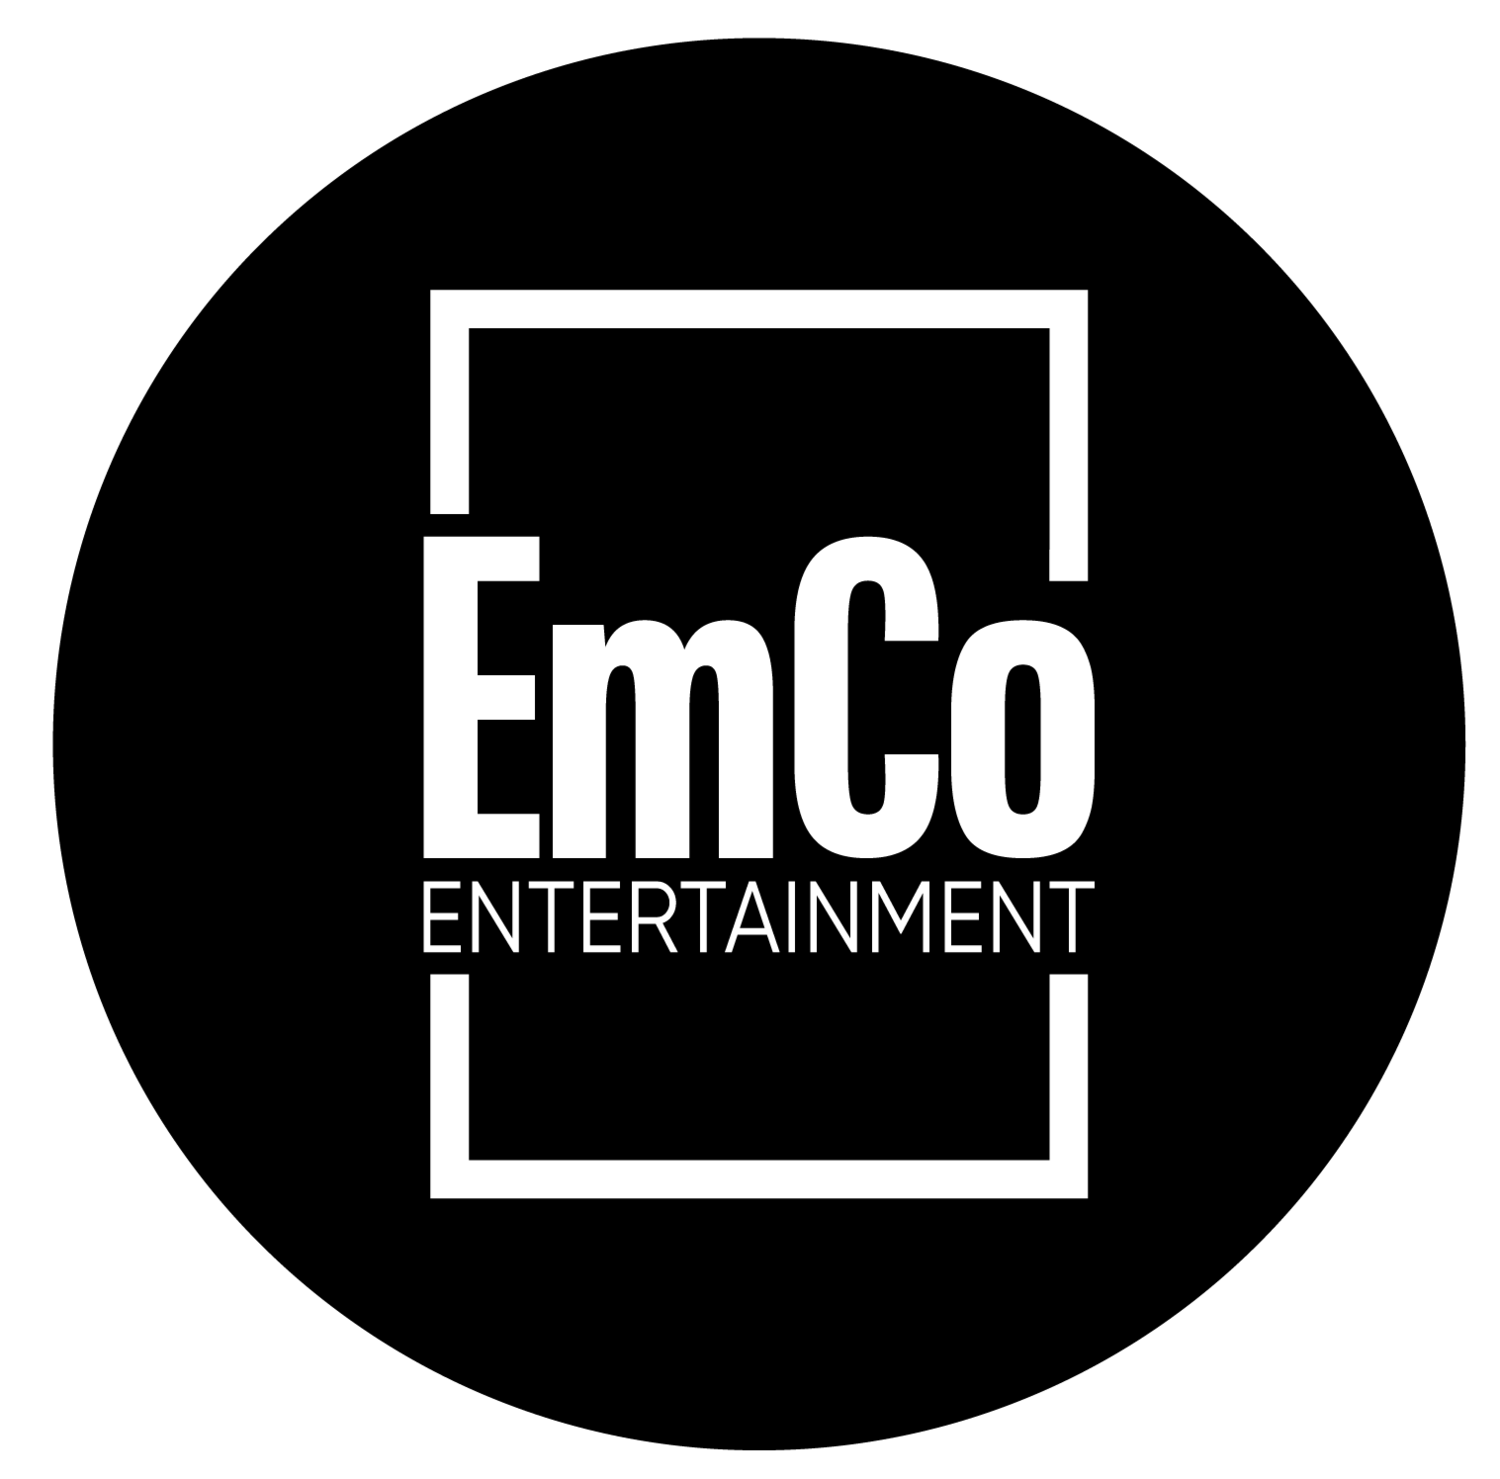 EmCo Entertainment